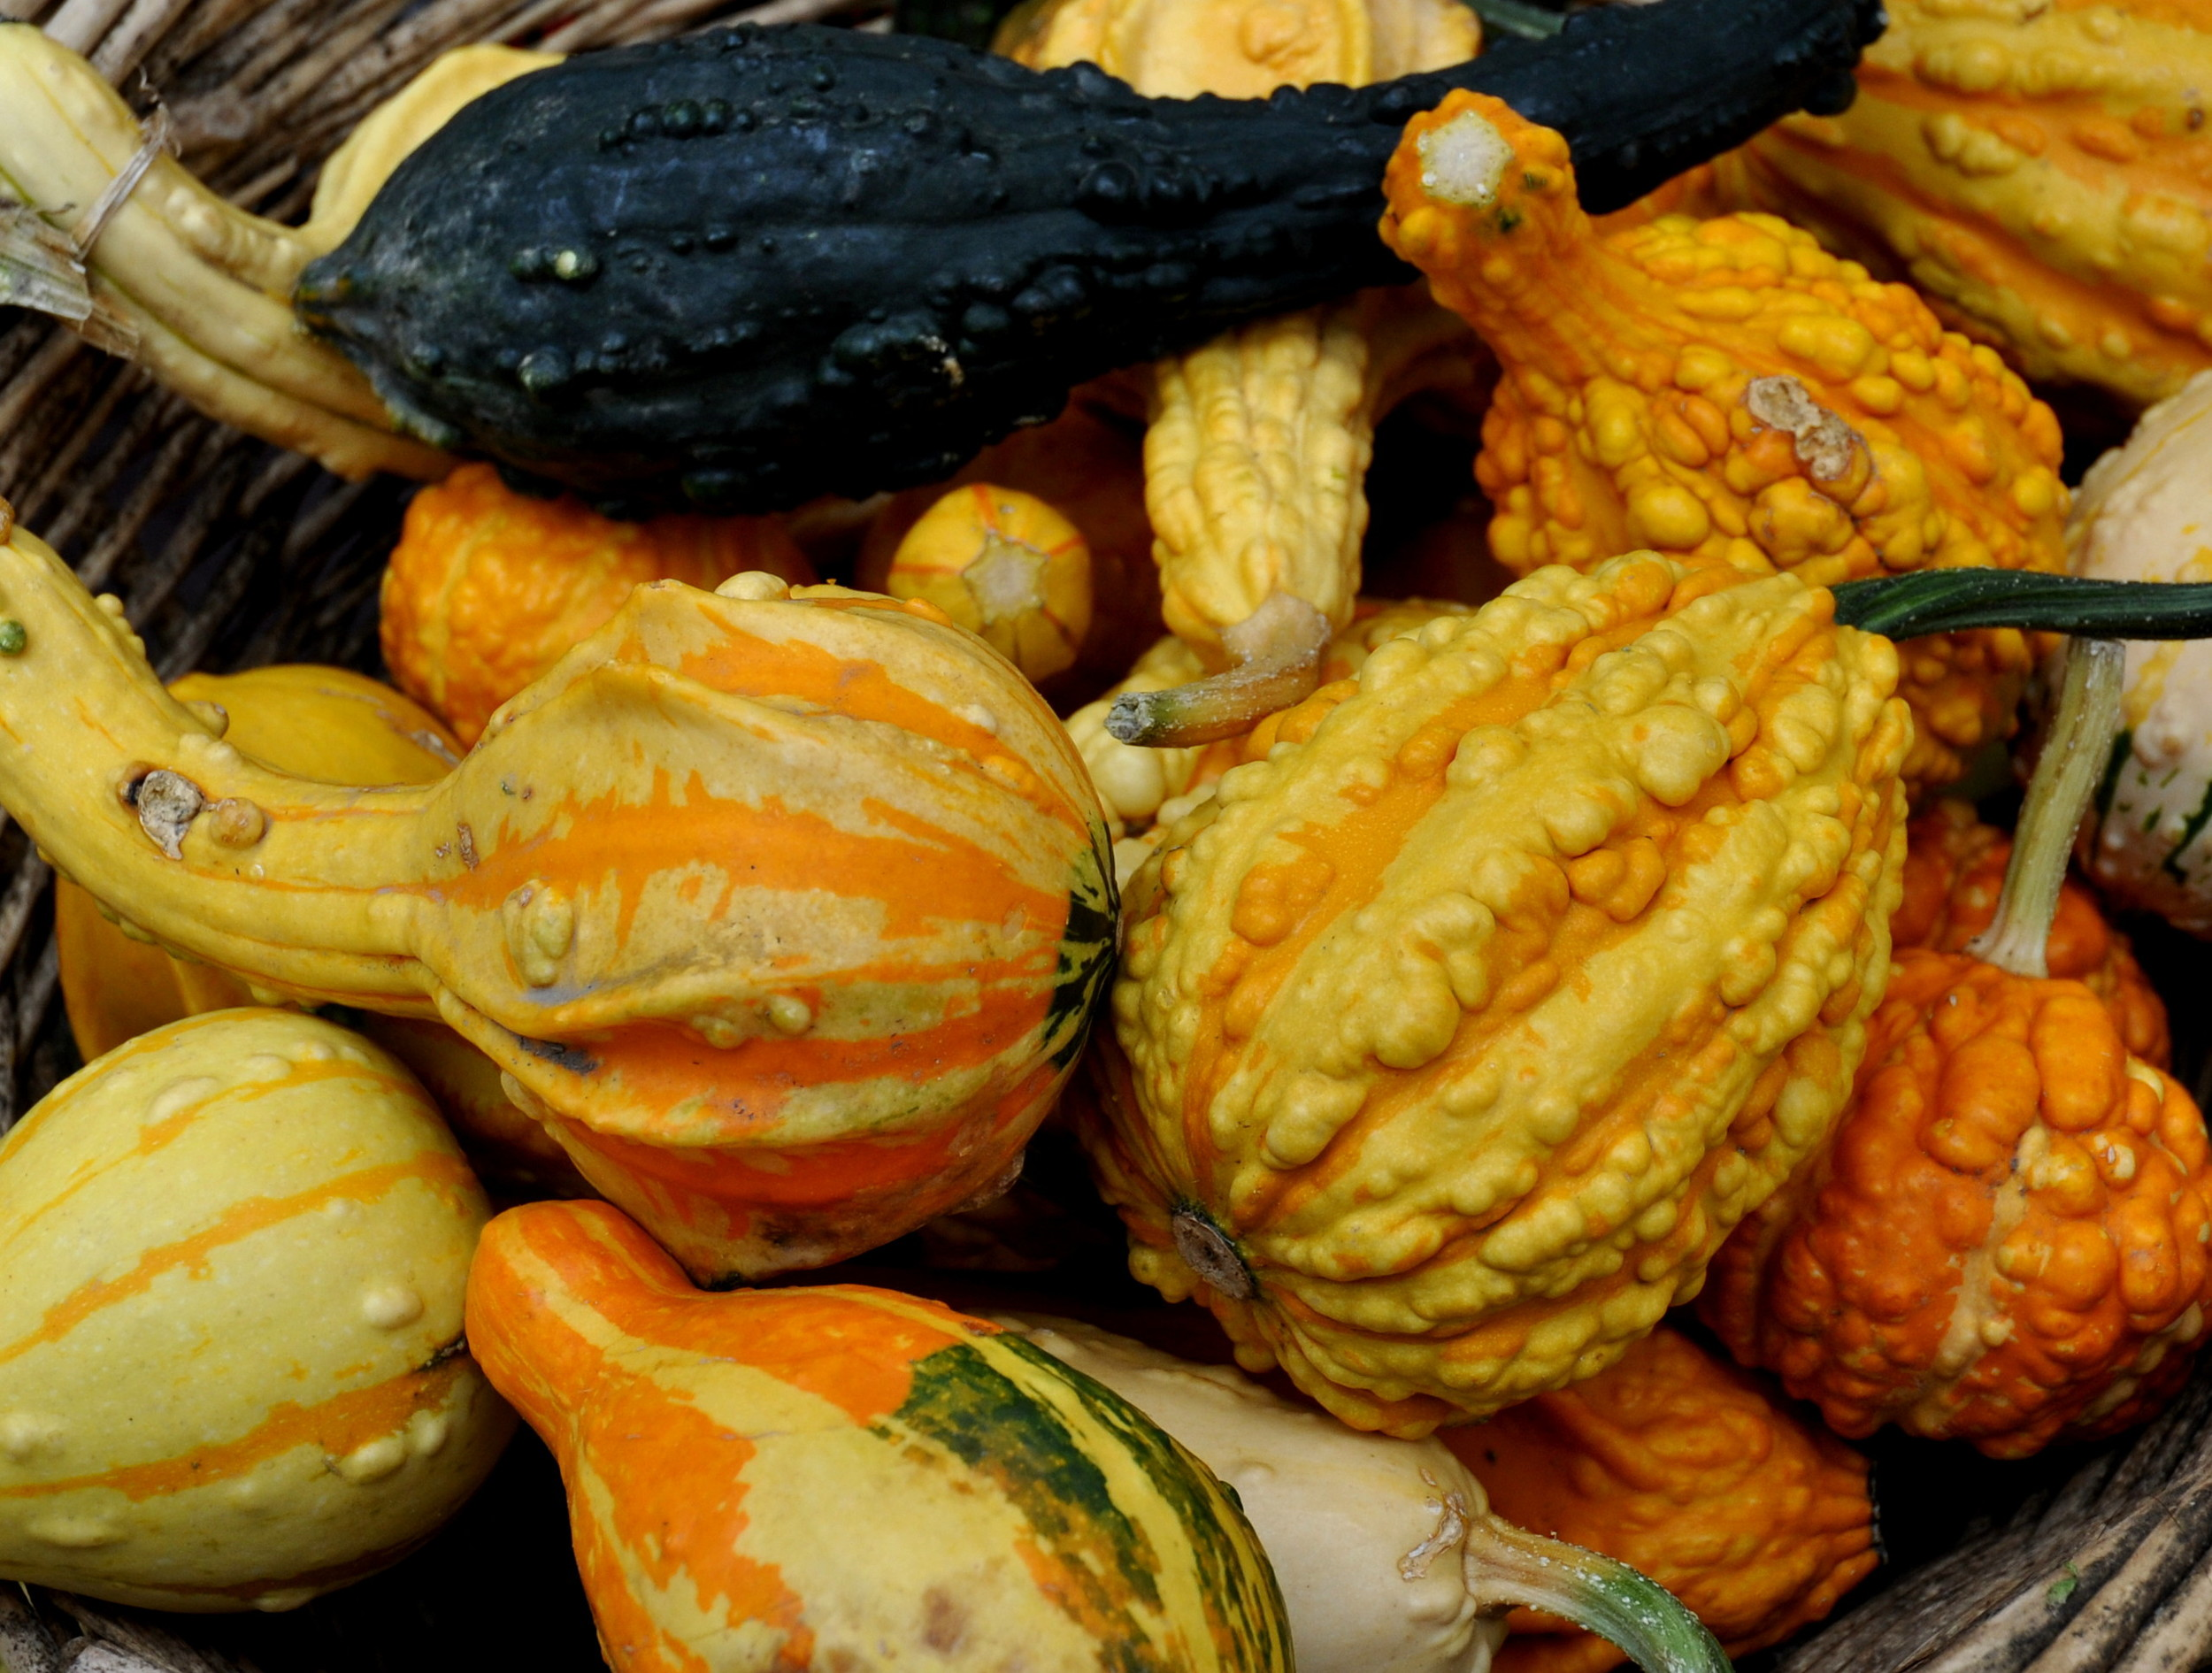 Ornamental gourds from Alm HIll Gardens. Photo copyright 2013 by Zachary D. Lyons.